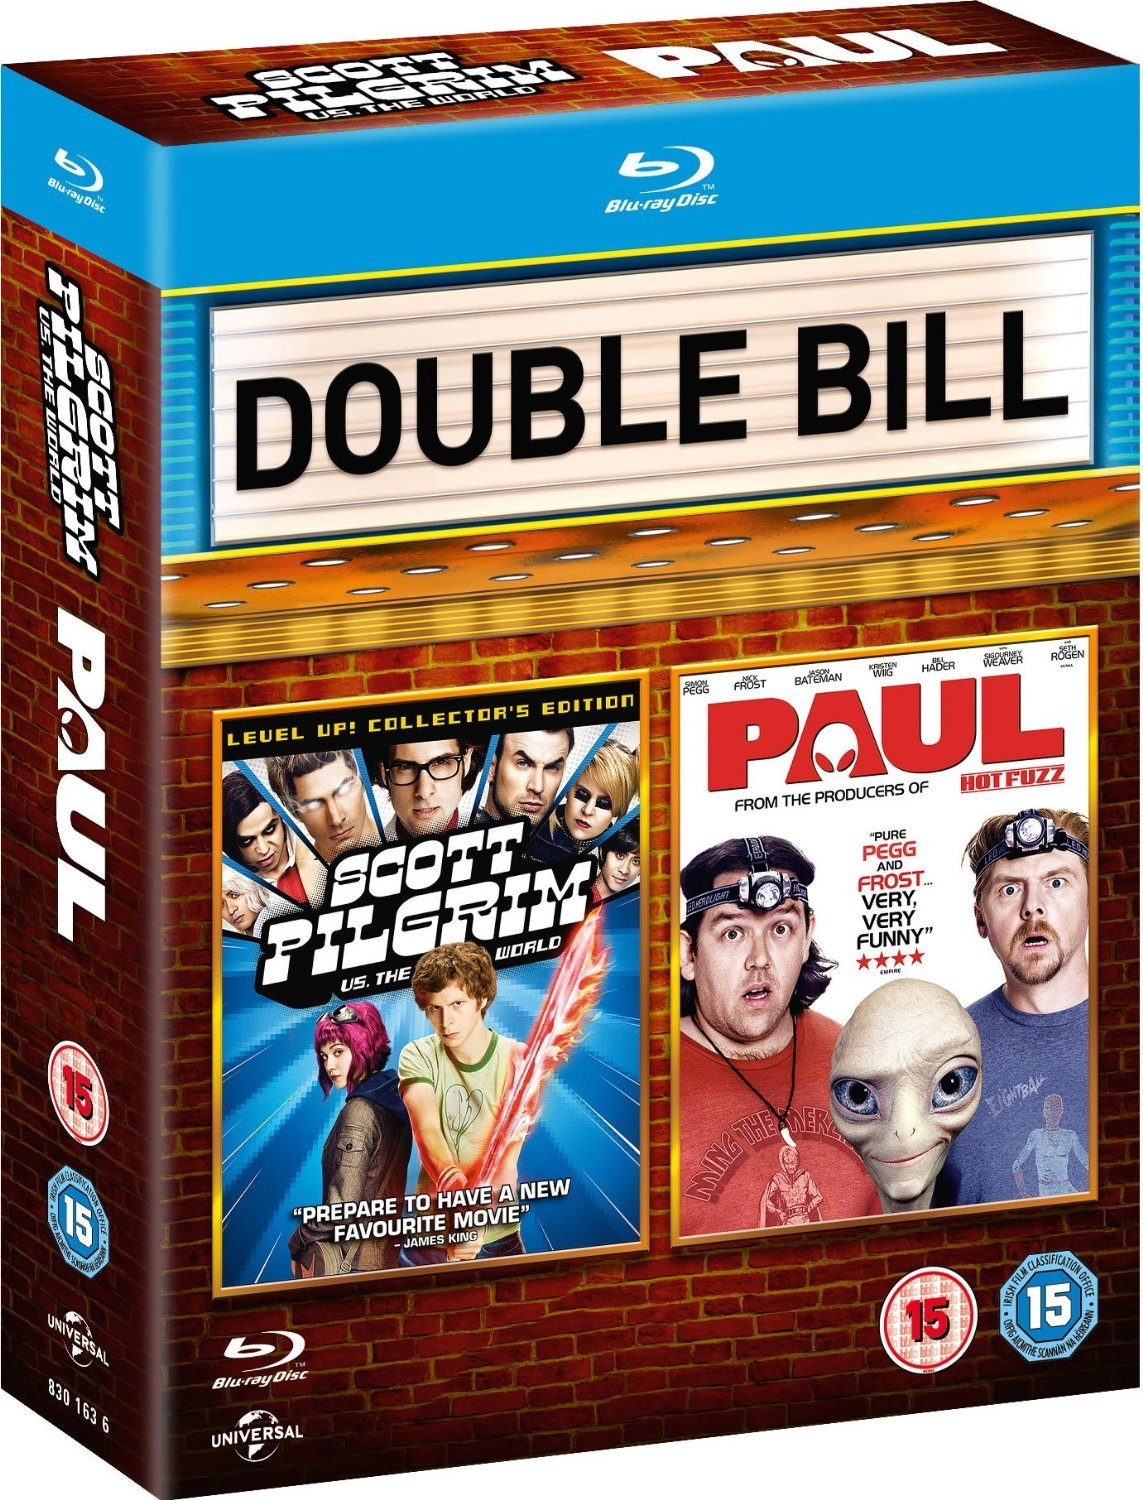 Scott Pilgrim vs. The World / Paul - Double Pack Blu-ray: Amazon.es: Cine y Series TV